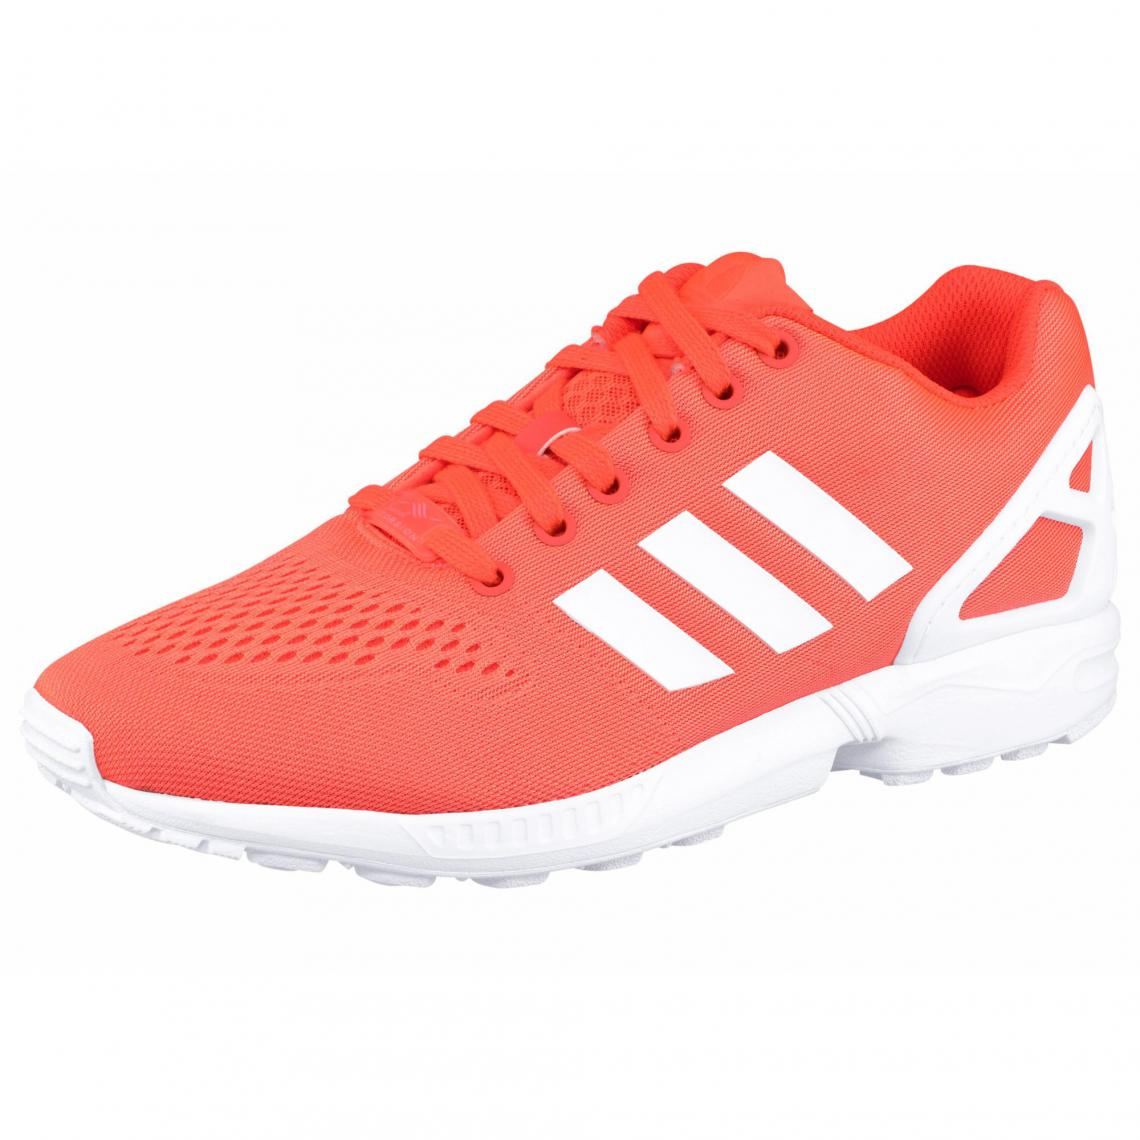 adidas zx flux orange fluo